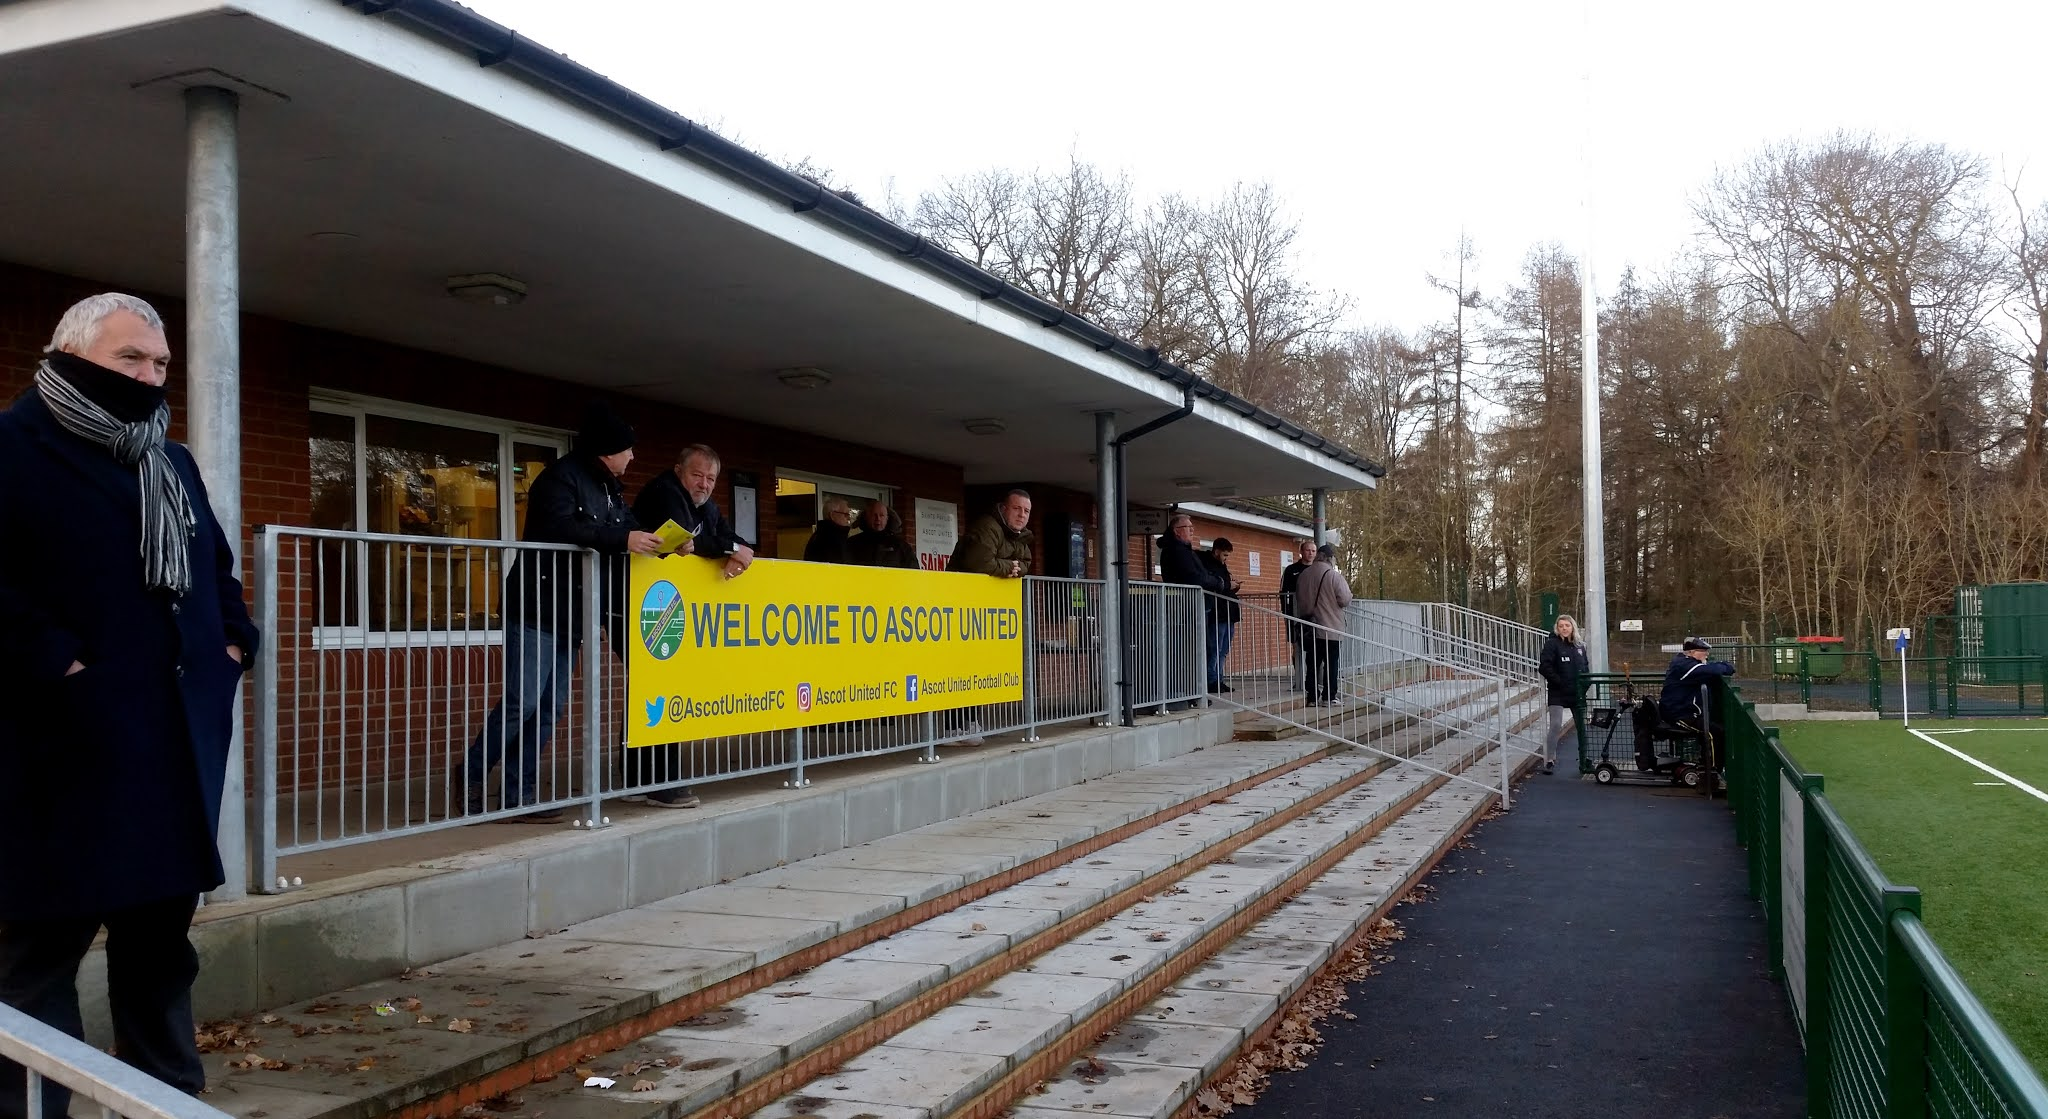 The clubhouse exterior at Ascot United's Racecourse Ground